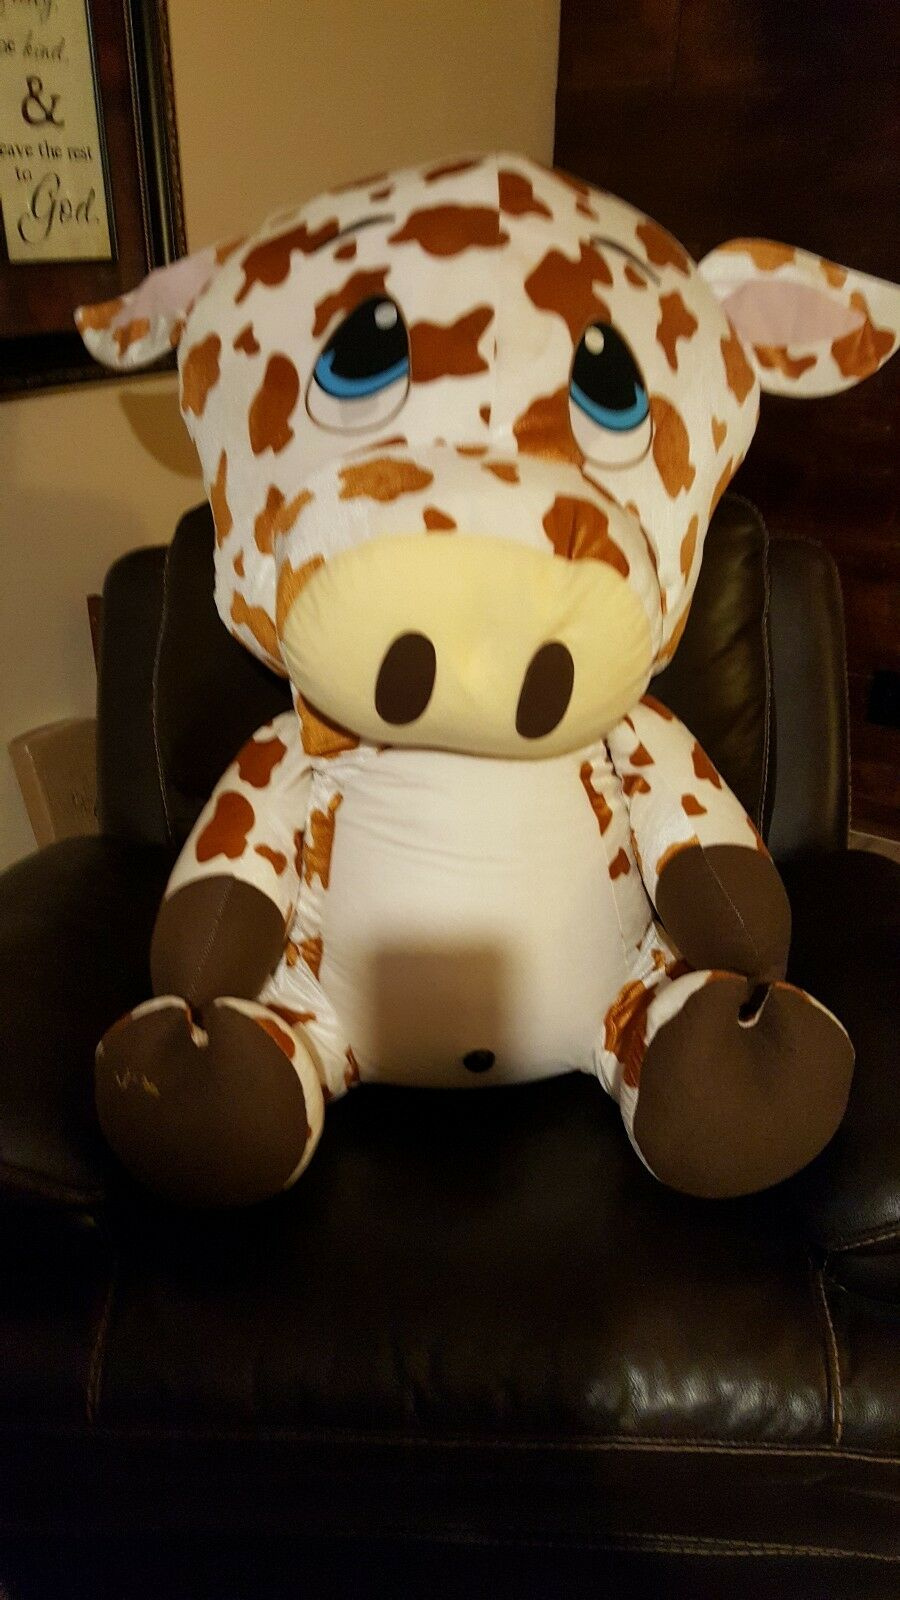 Classic Toy Co. Giraffe Plush Carnival Style OVER 3 FEET TALL. 40 inches